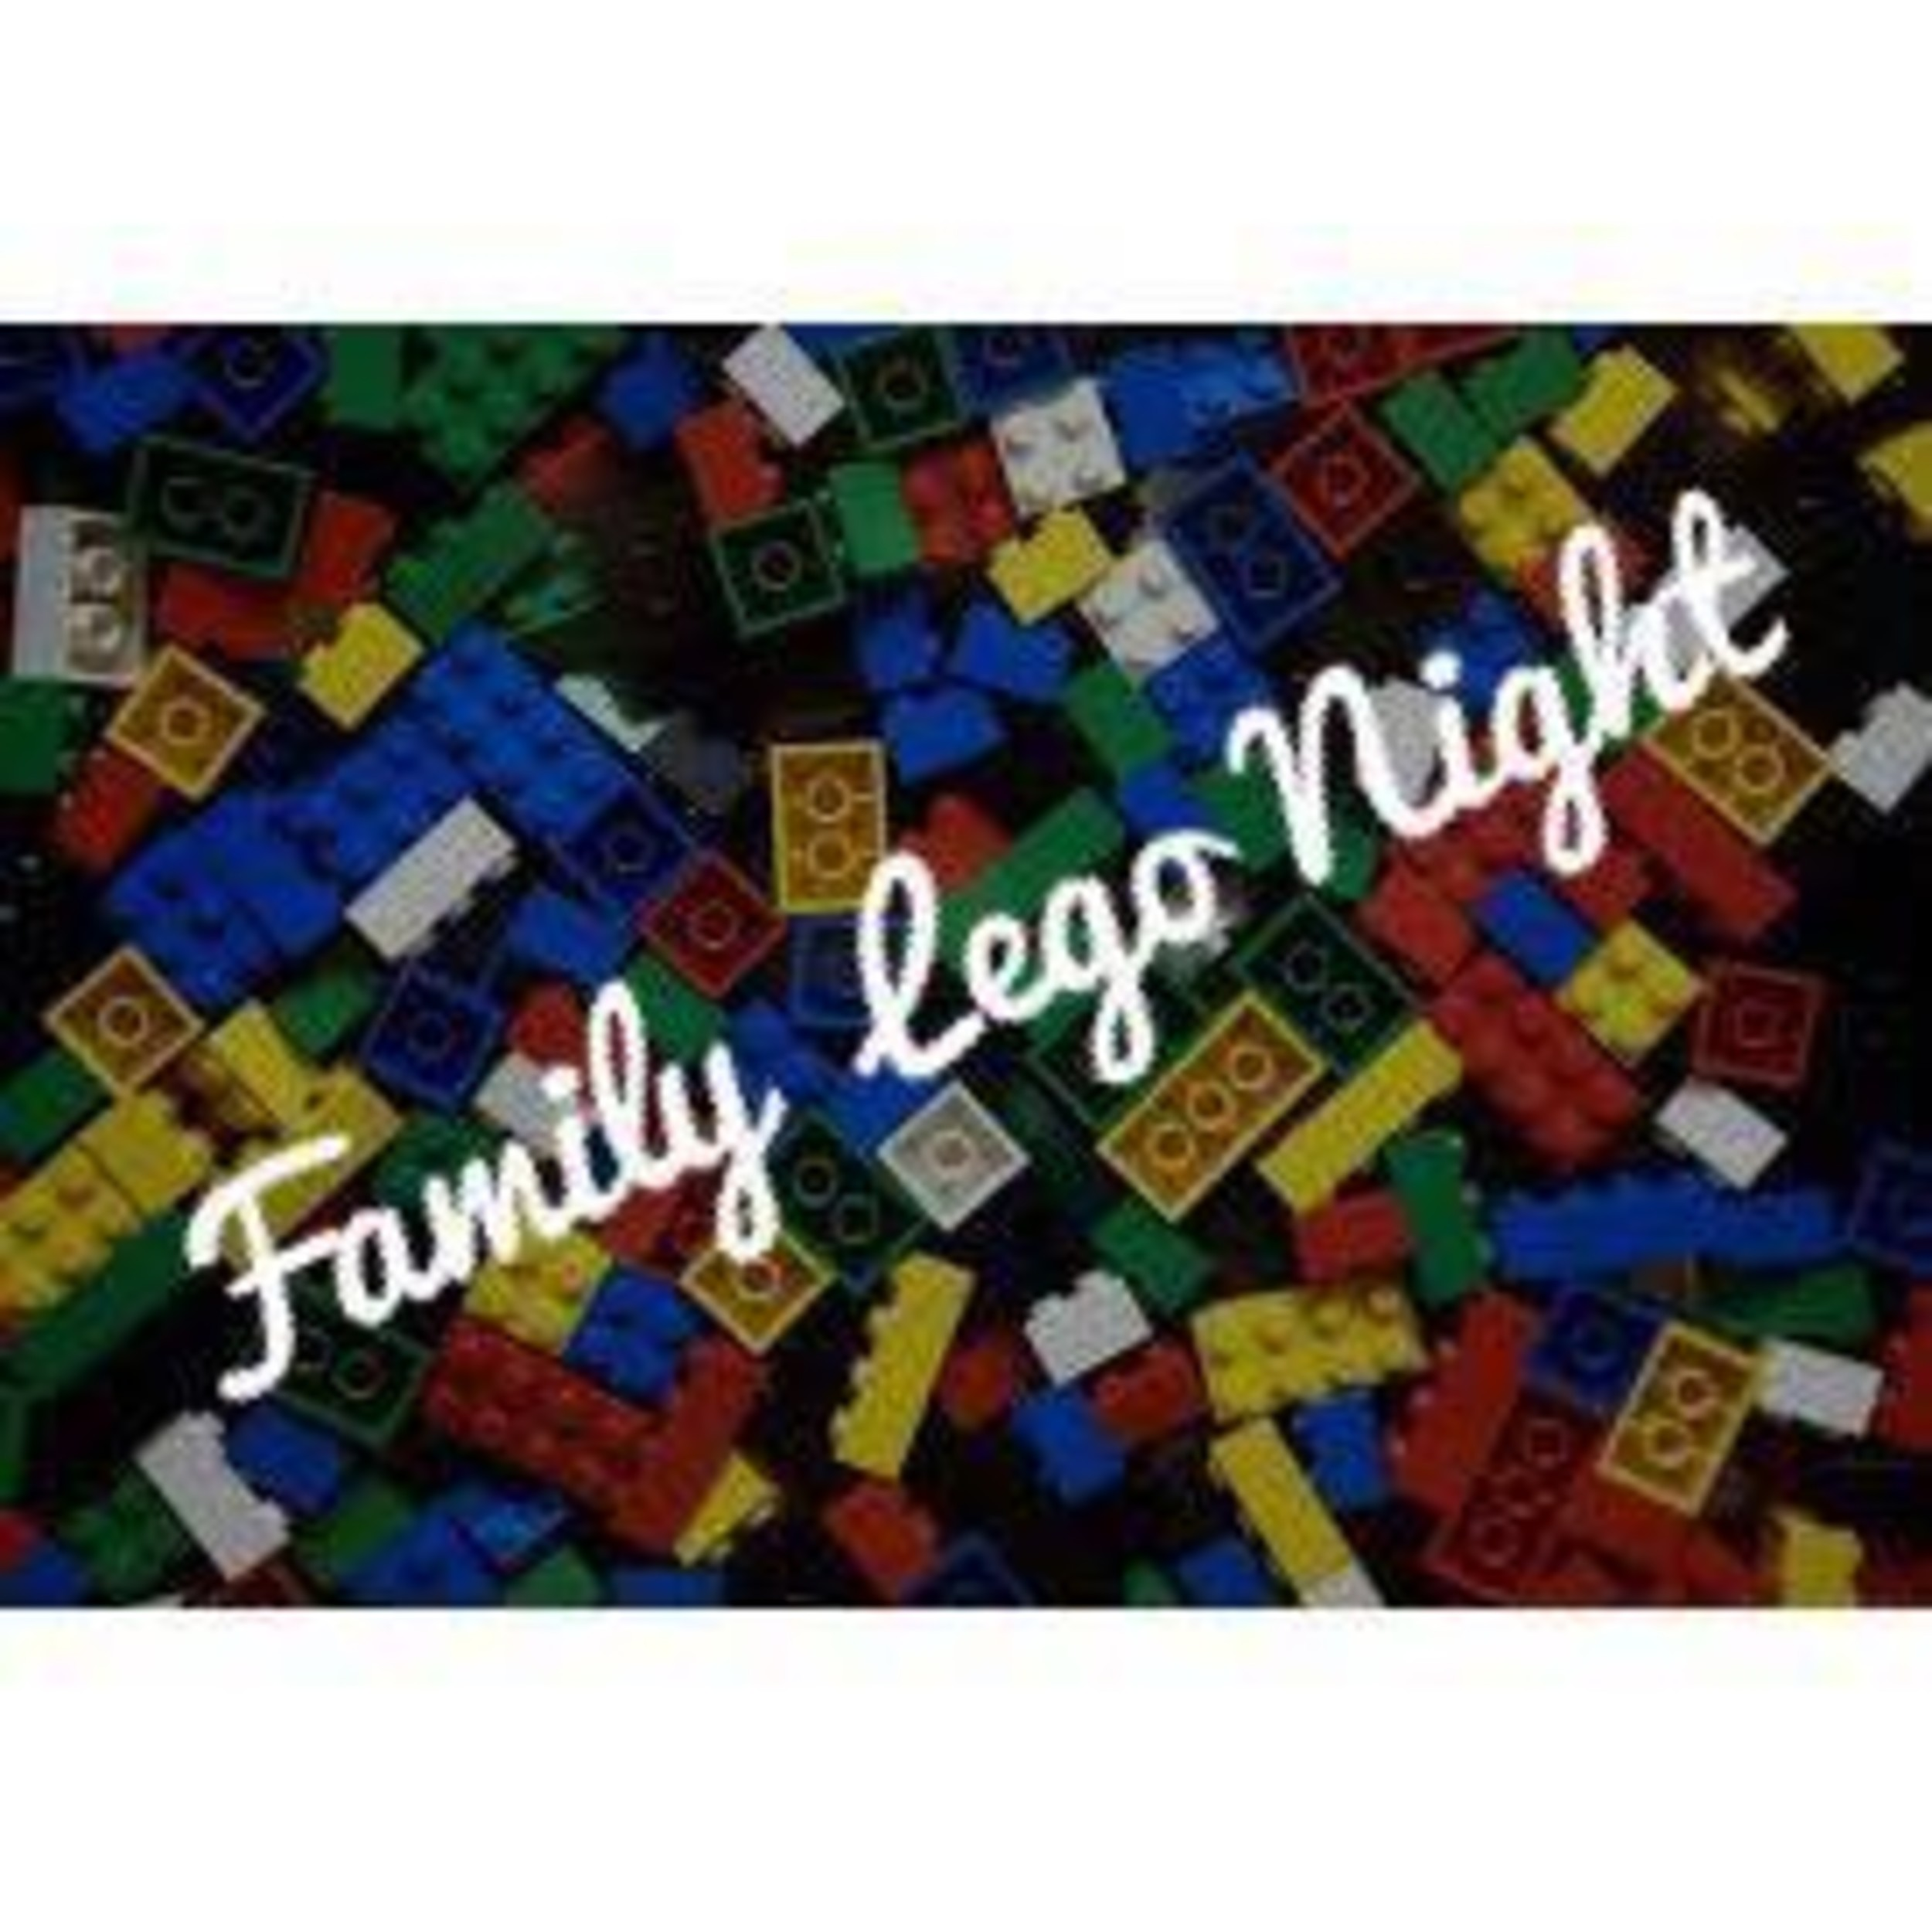 Family Lego Night    EastBayRI com   News  Opinion  Things to Do in     Family Lego Night